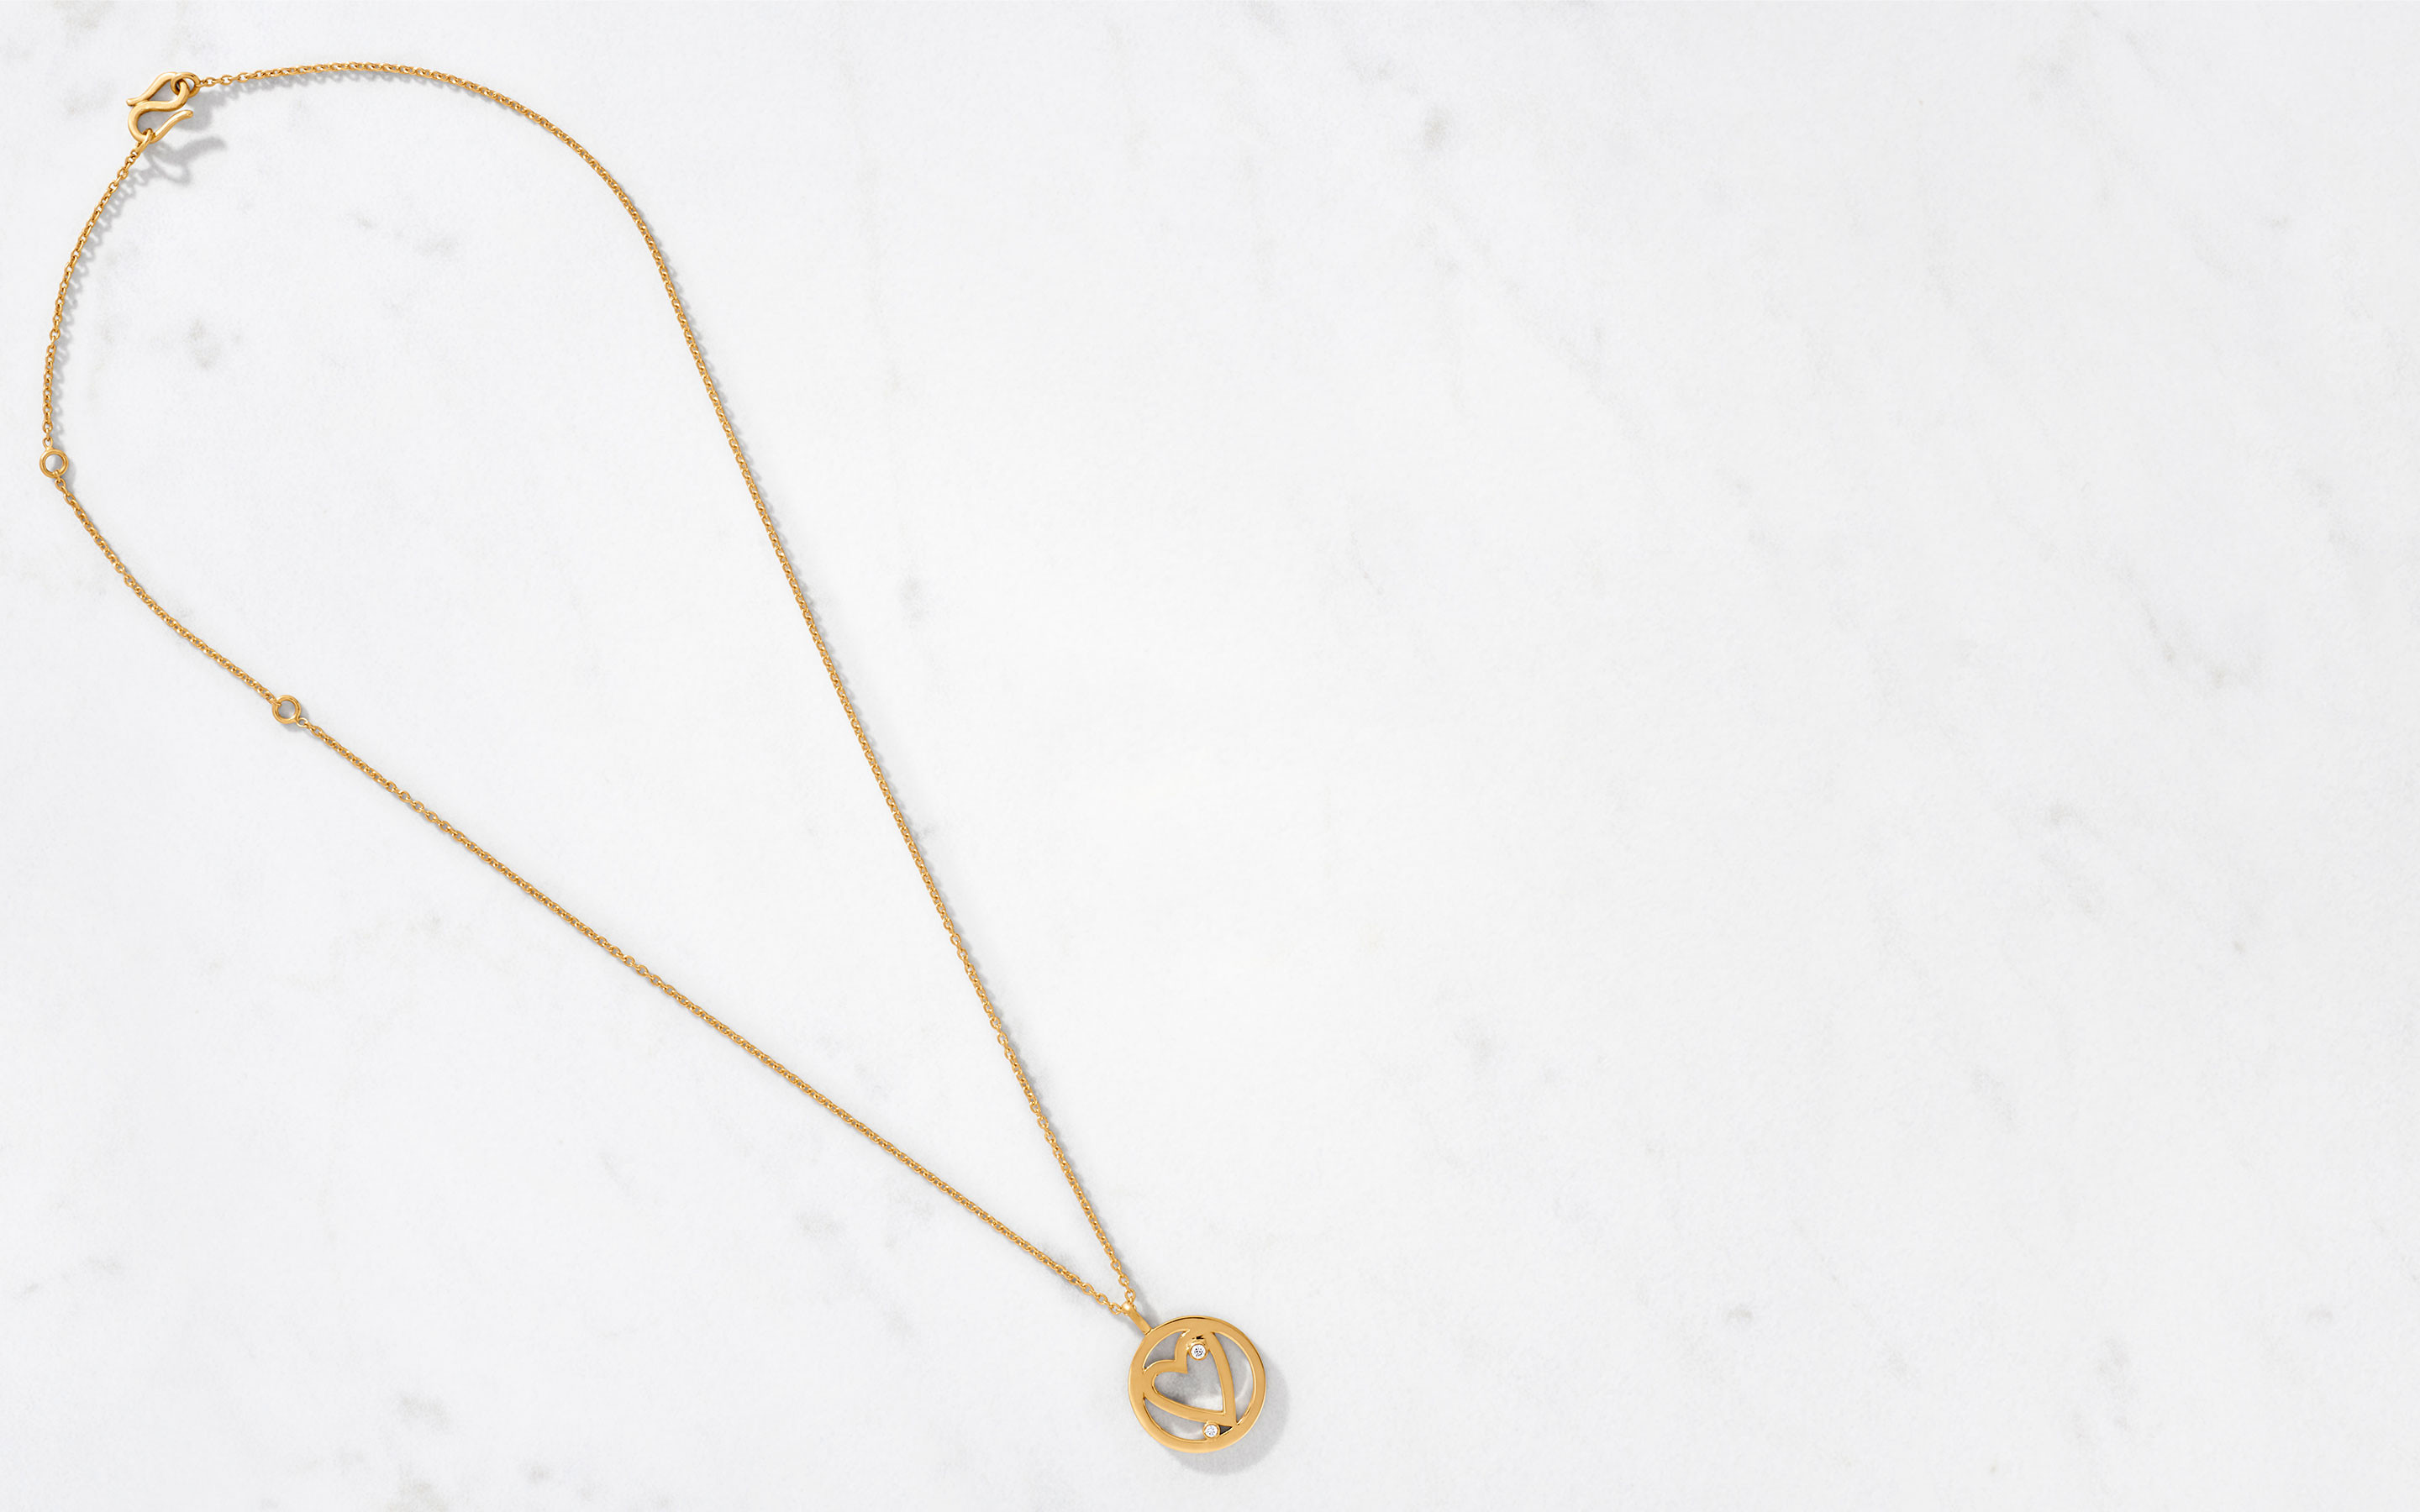 stylish charm necklace with open heart made of 22 karat polished gold